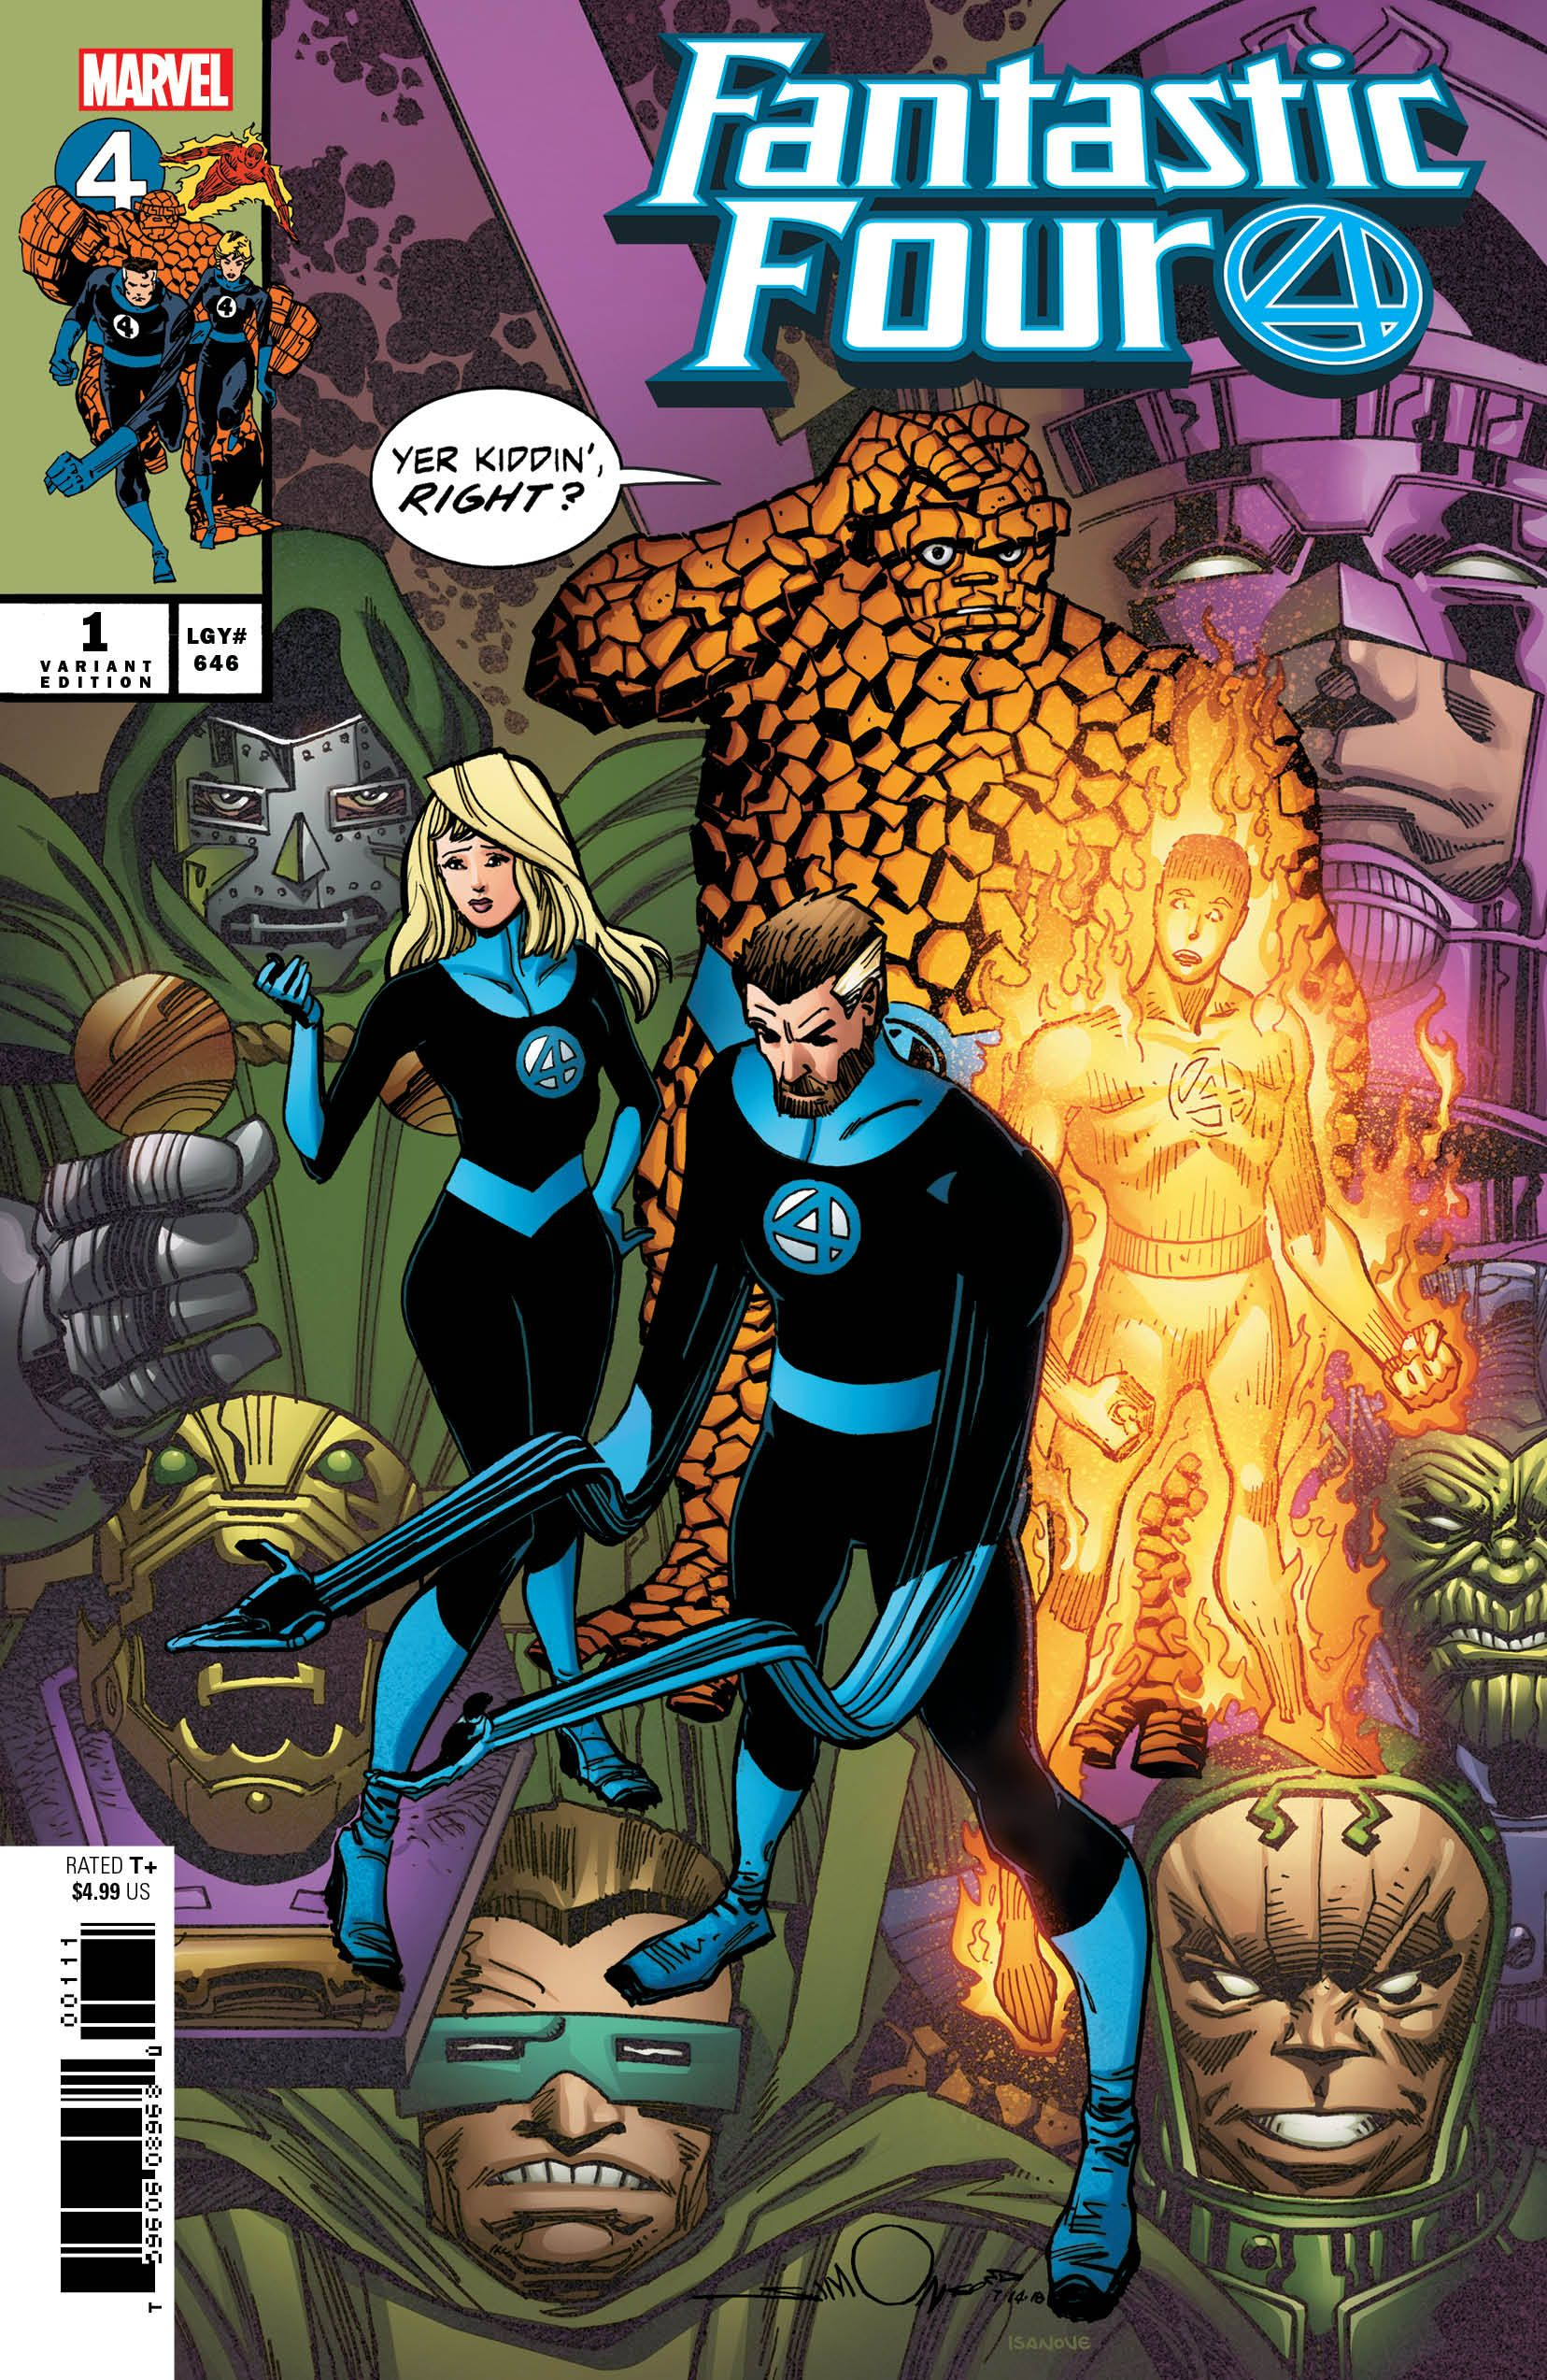 celebrate the return of the fantastic four with an all